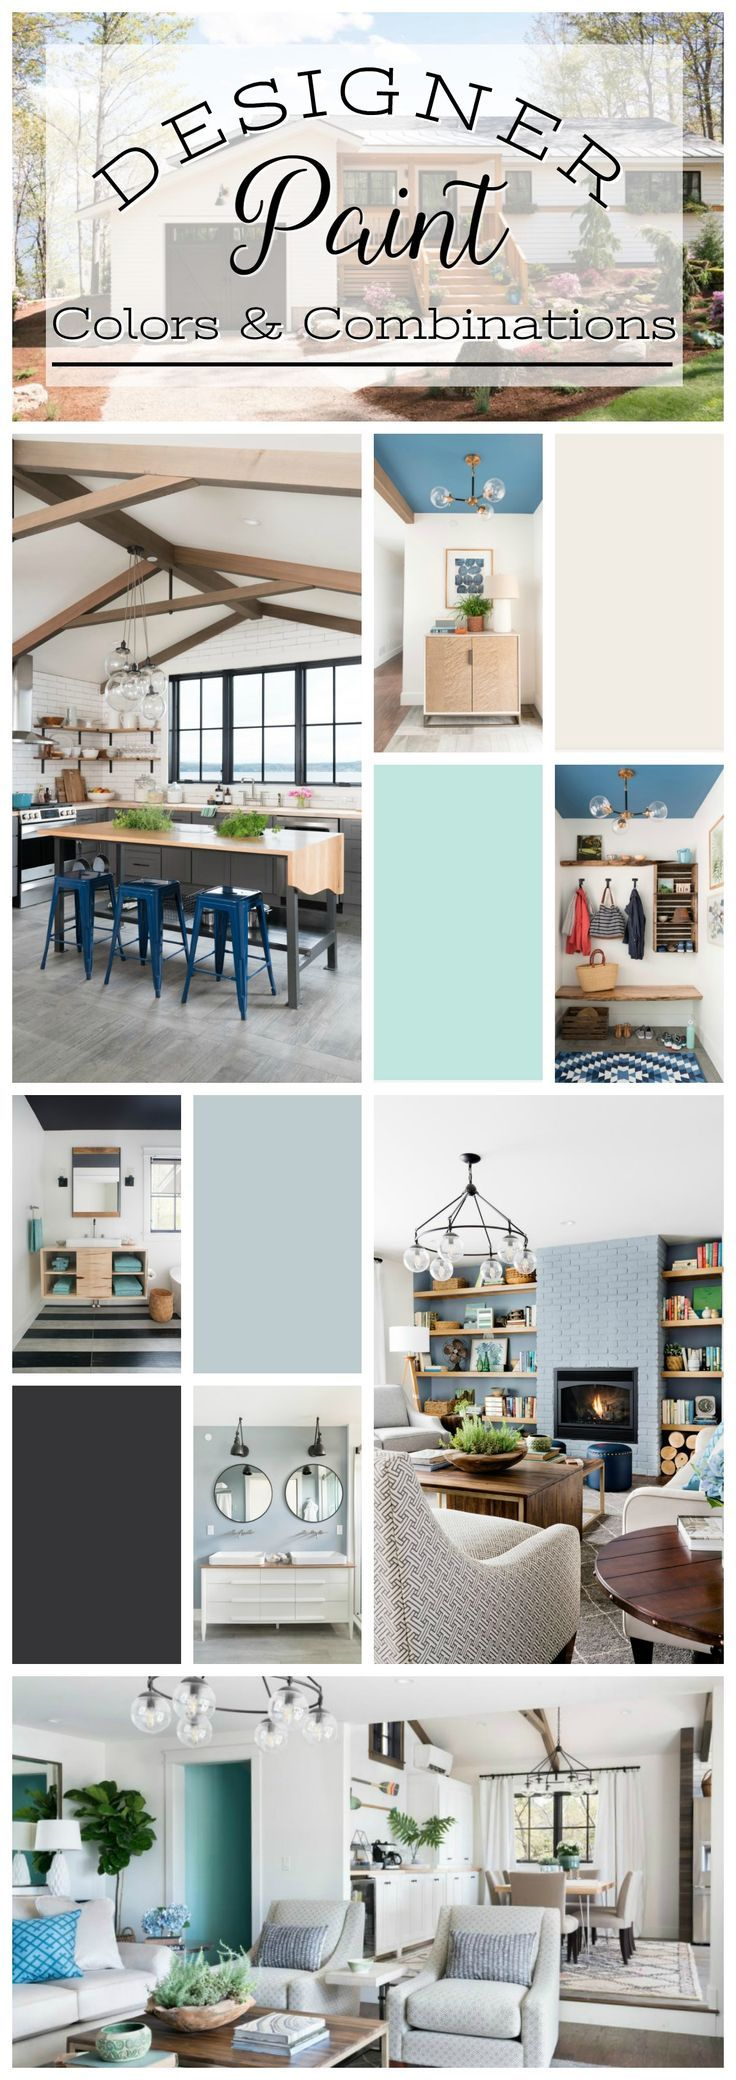 Inspirational Wall Paint Colour Palettes